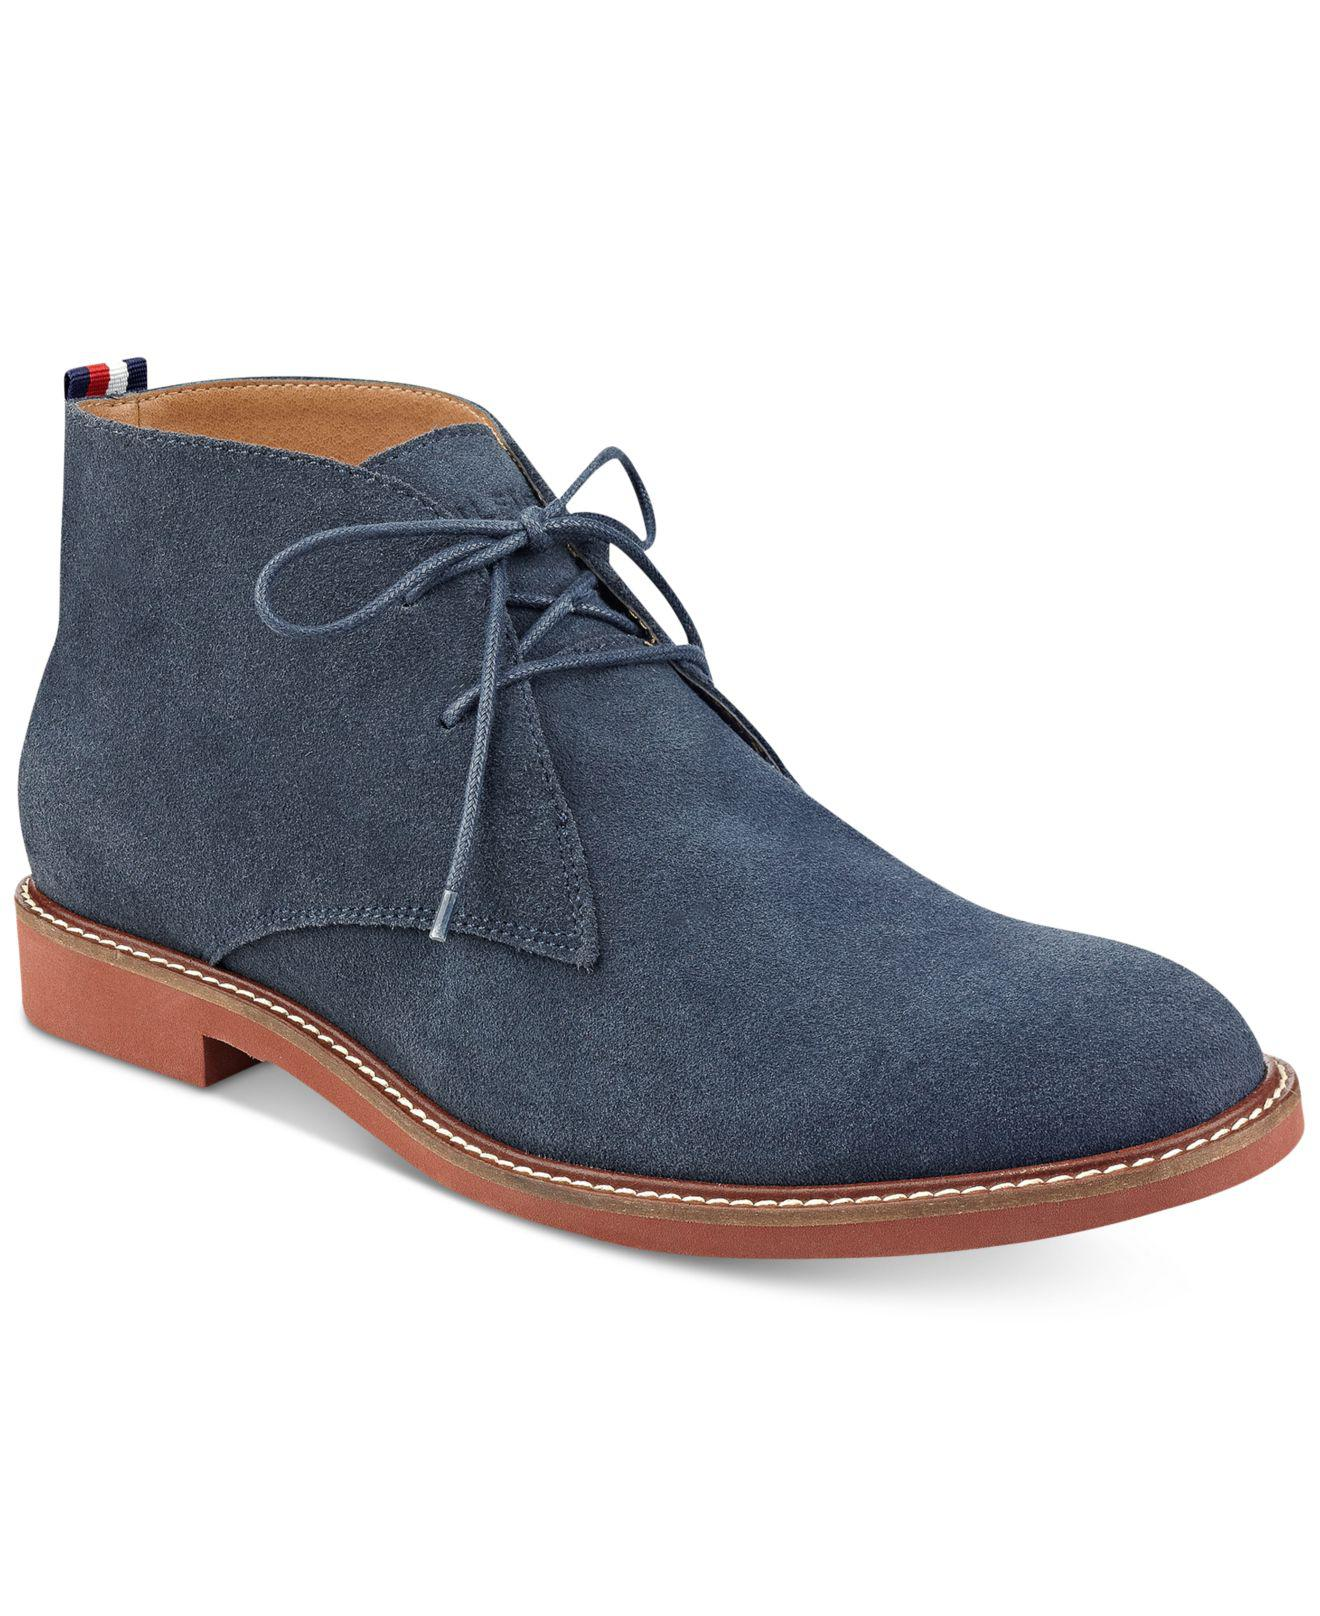 21266dcb47b9b3 Lyst - Tommy Hilfiger Men s Gervis Chukka Boots in Blue for Men